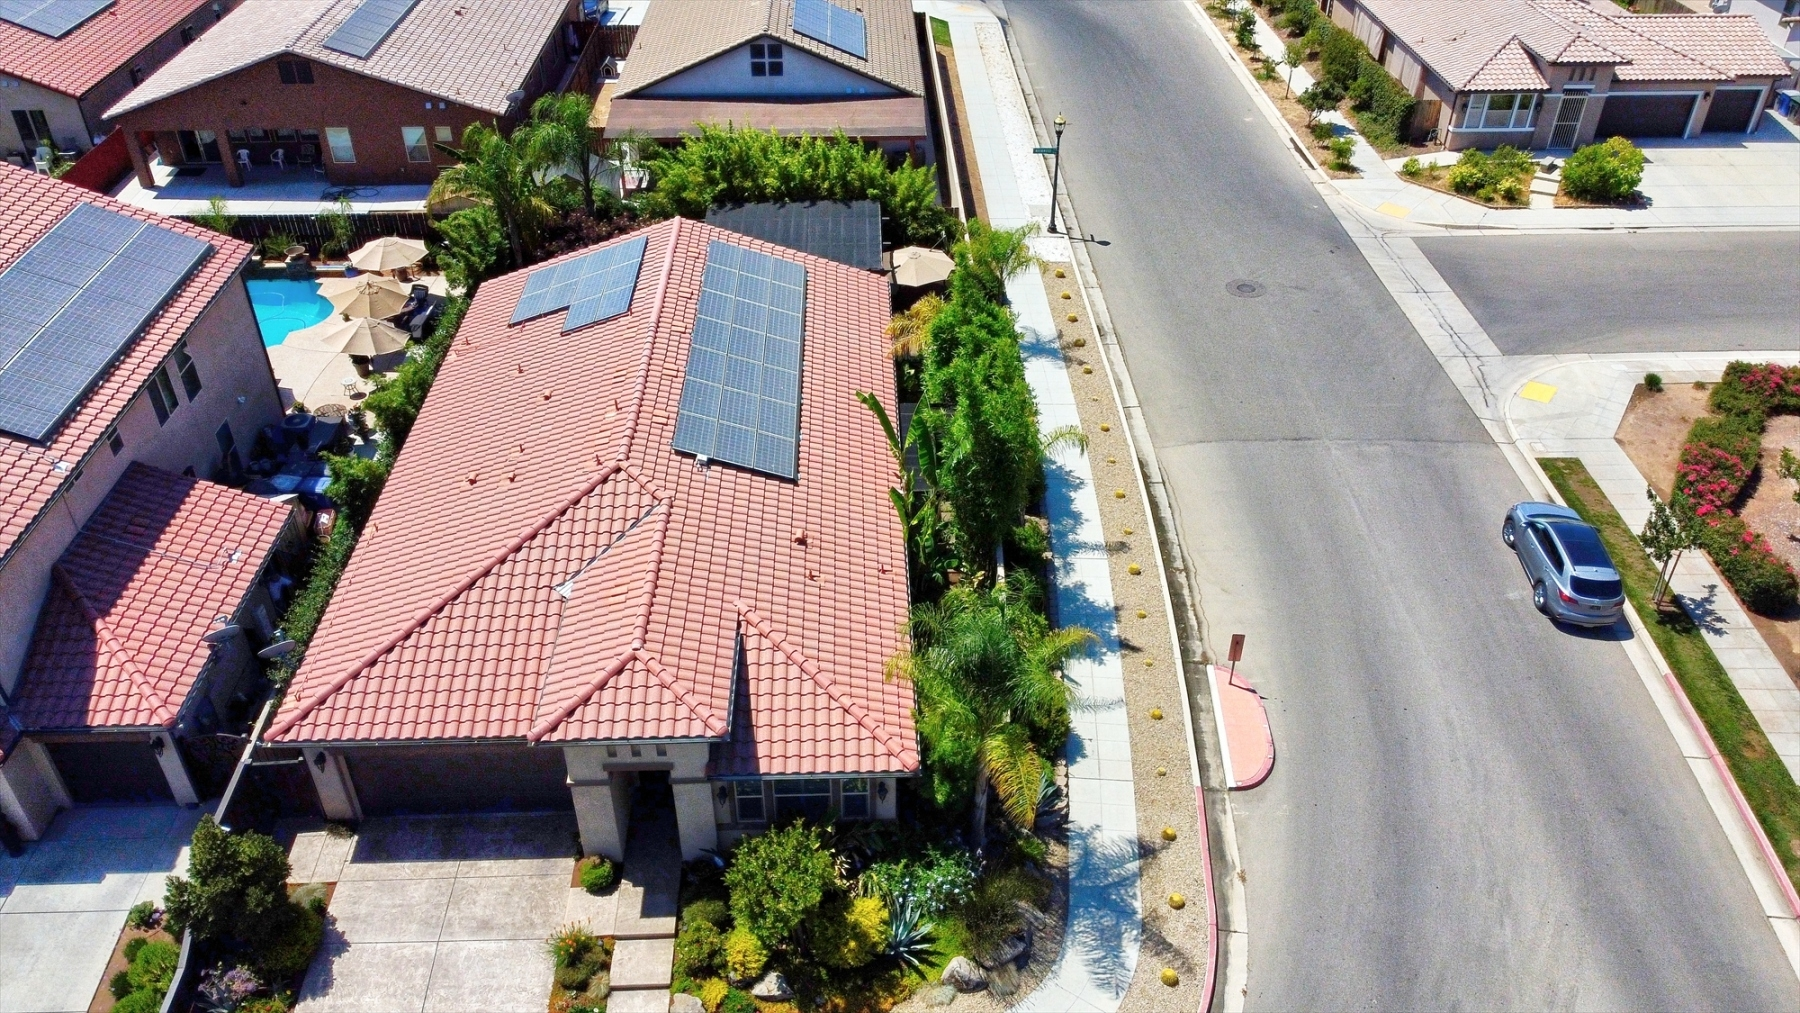 Aerial of Roofline with Solar Panels